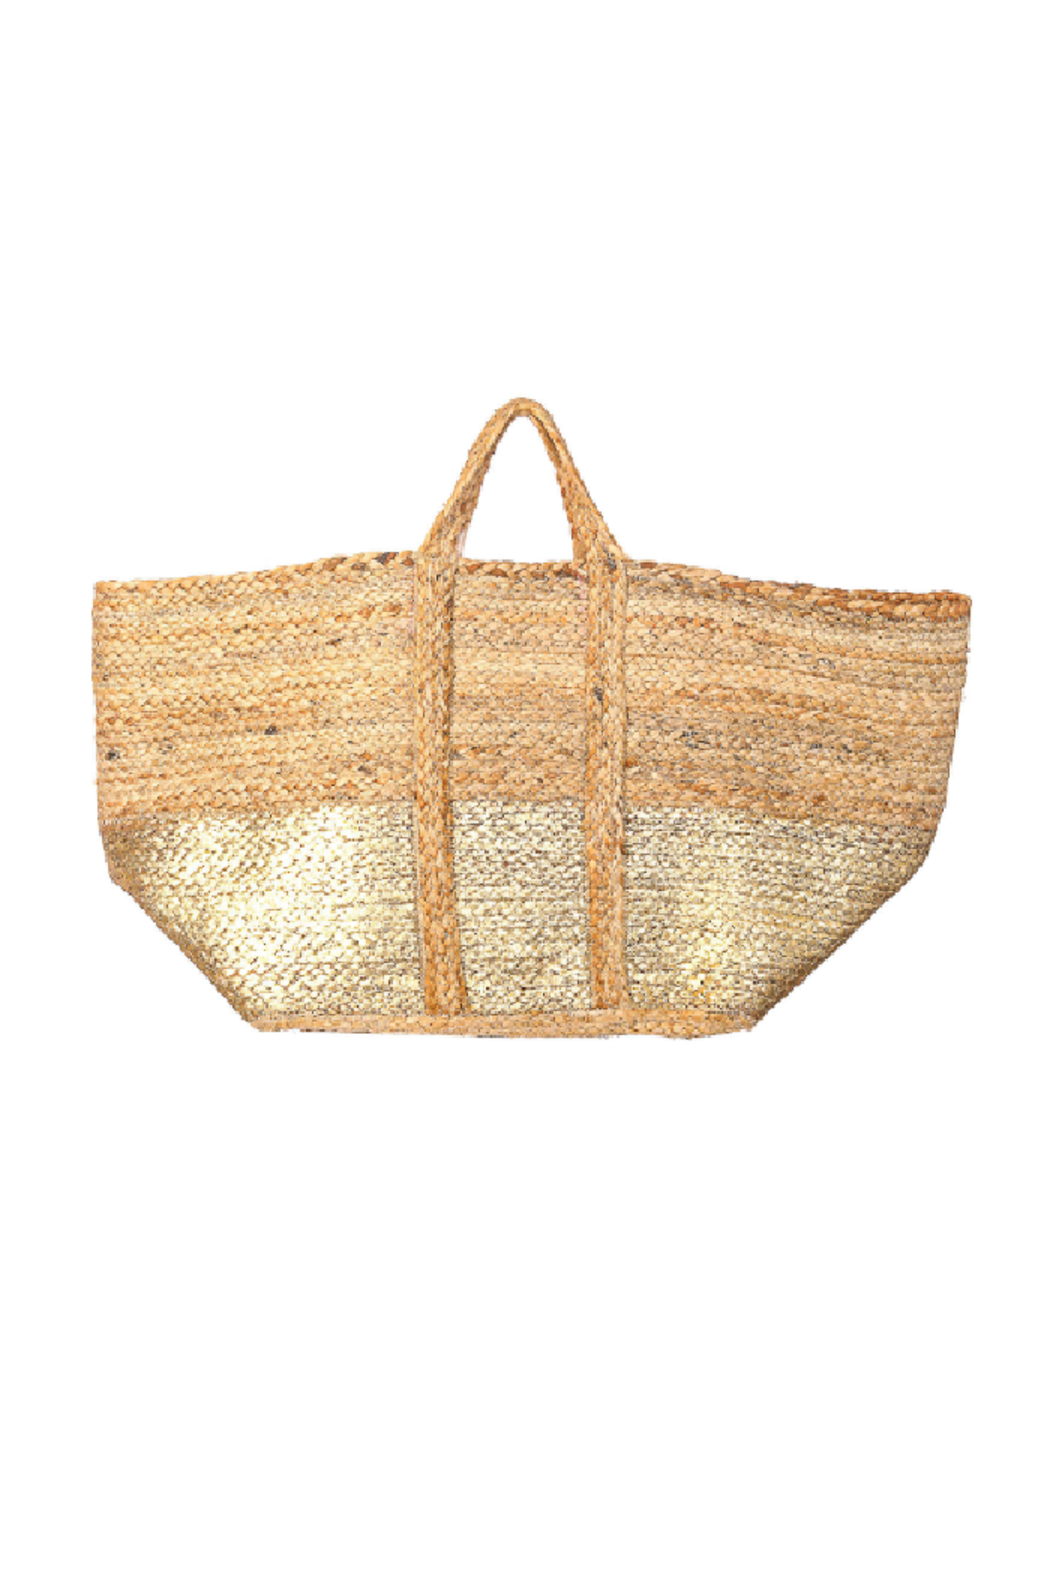 Fame Accessories Wide Jute Tote - Main Image